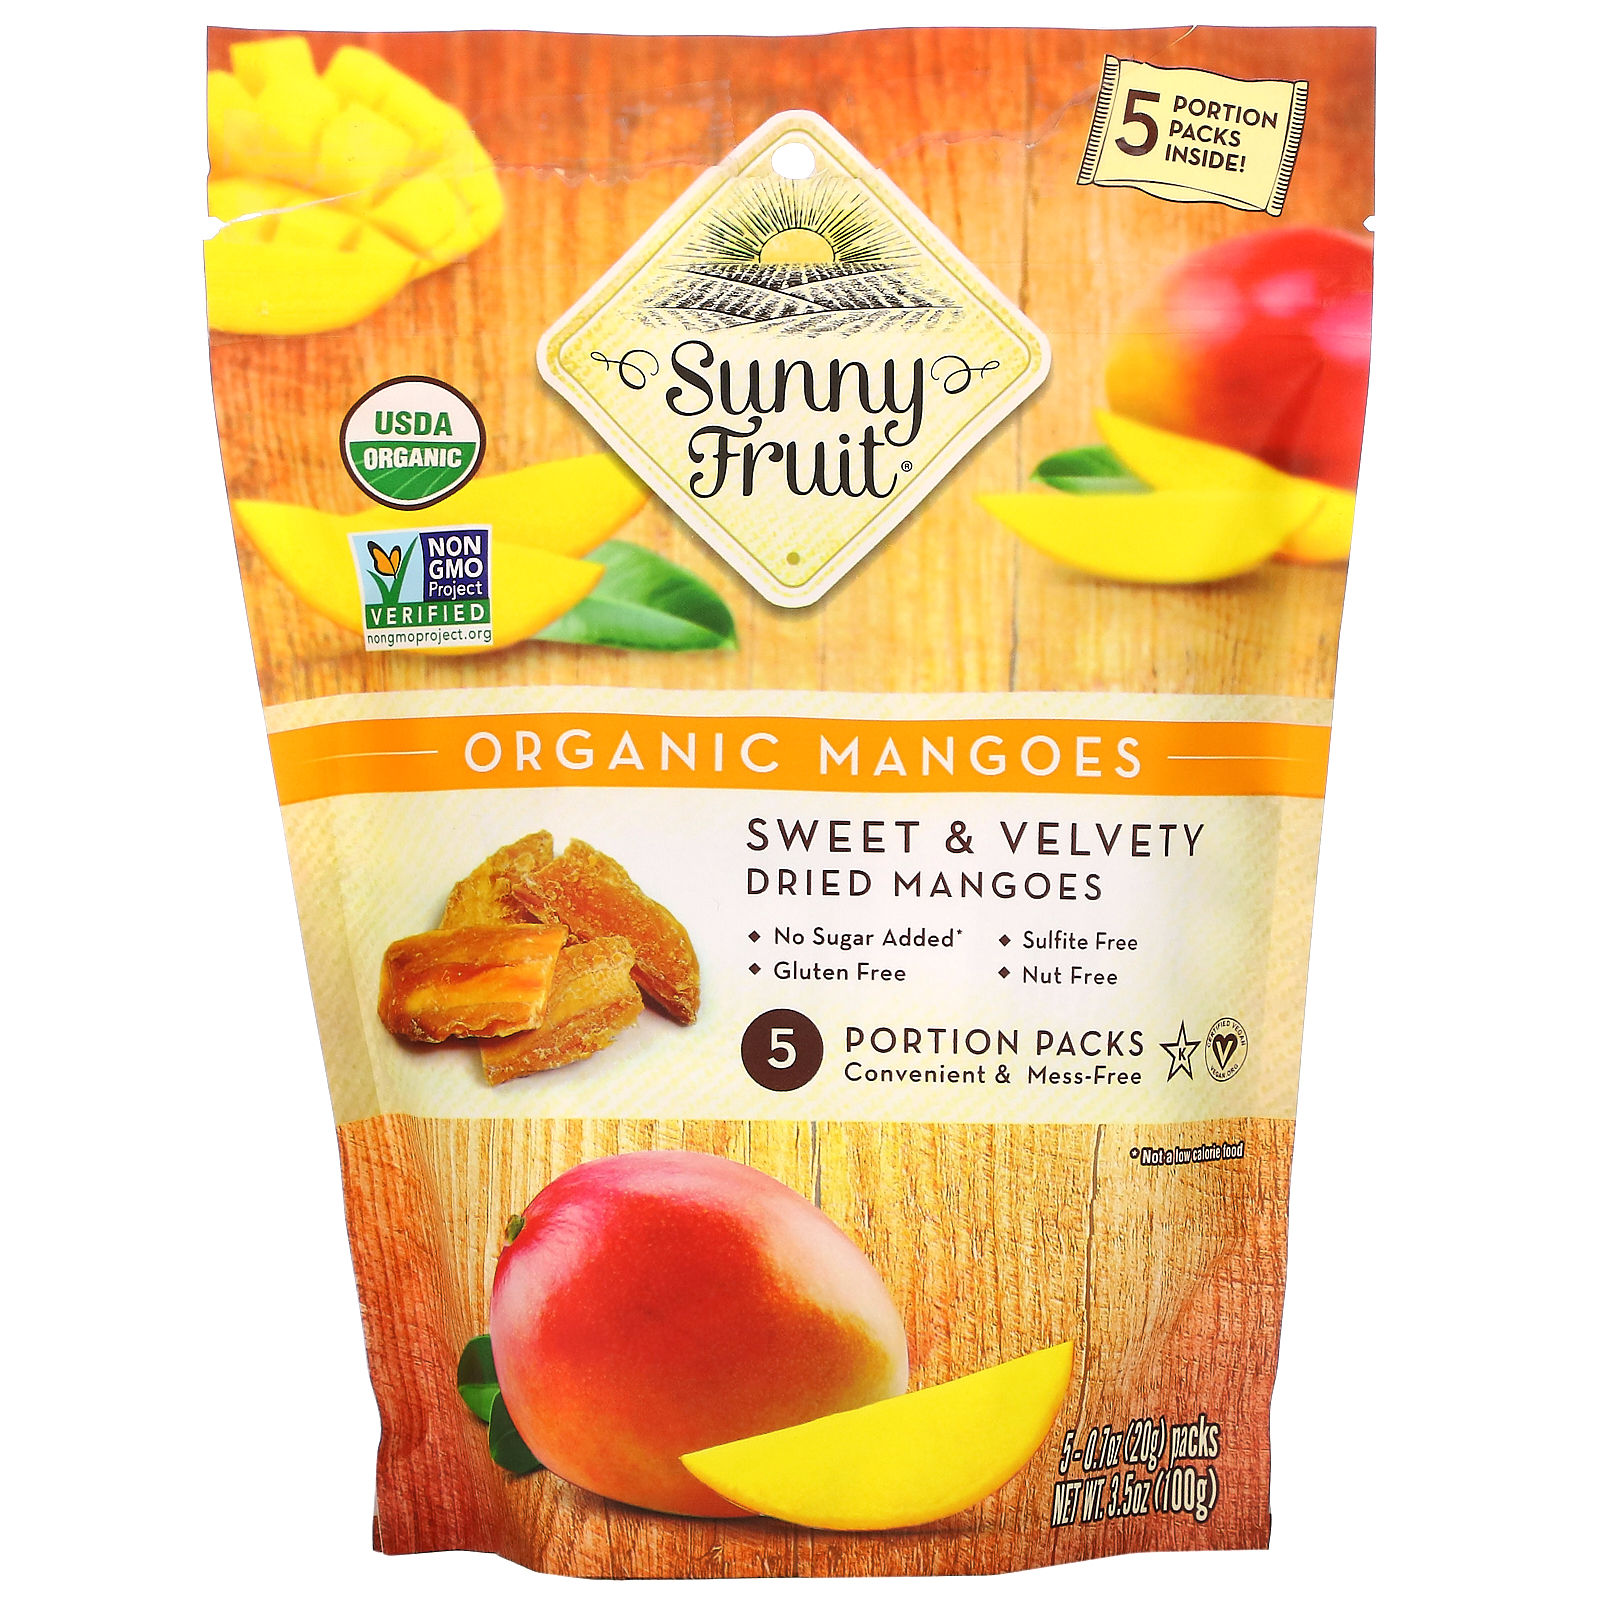 Sunny Fruit, Organic Mangoes, 5 Portion Packs, 0.7 oz ( 20 g) Each